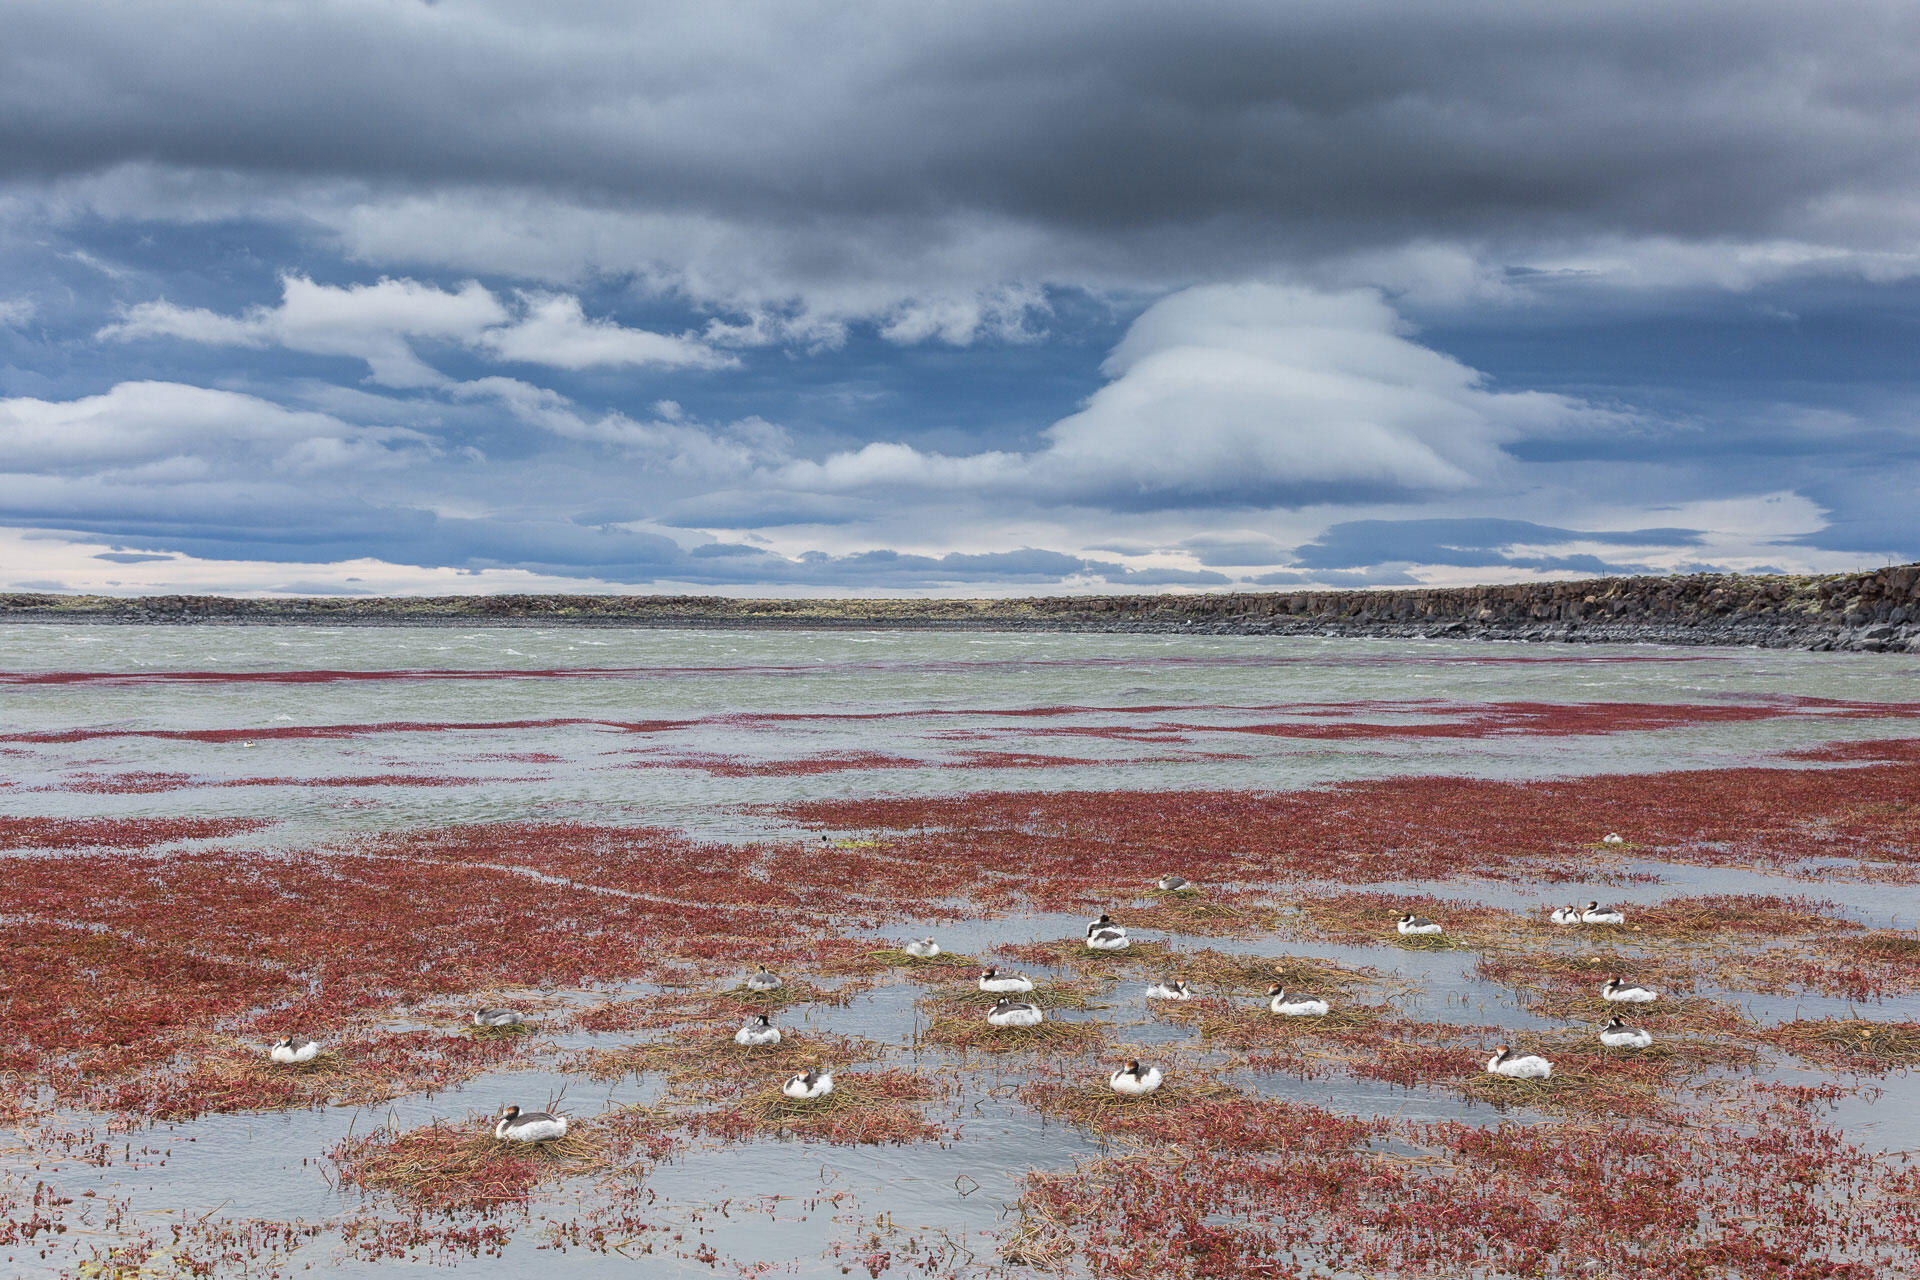 The Strobel plateau is famous for its brutal and constant winds, like the ones stirring up the water in the background of this picture. Hooded Grebes nest in the most sheltered area of the lake. Ugo Mellone